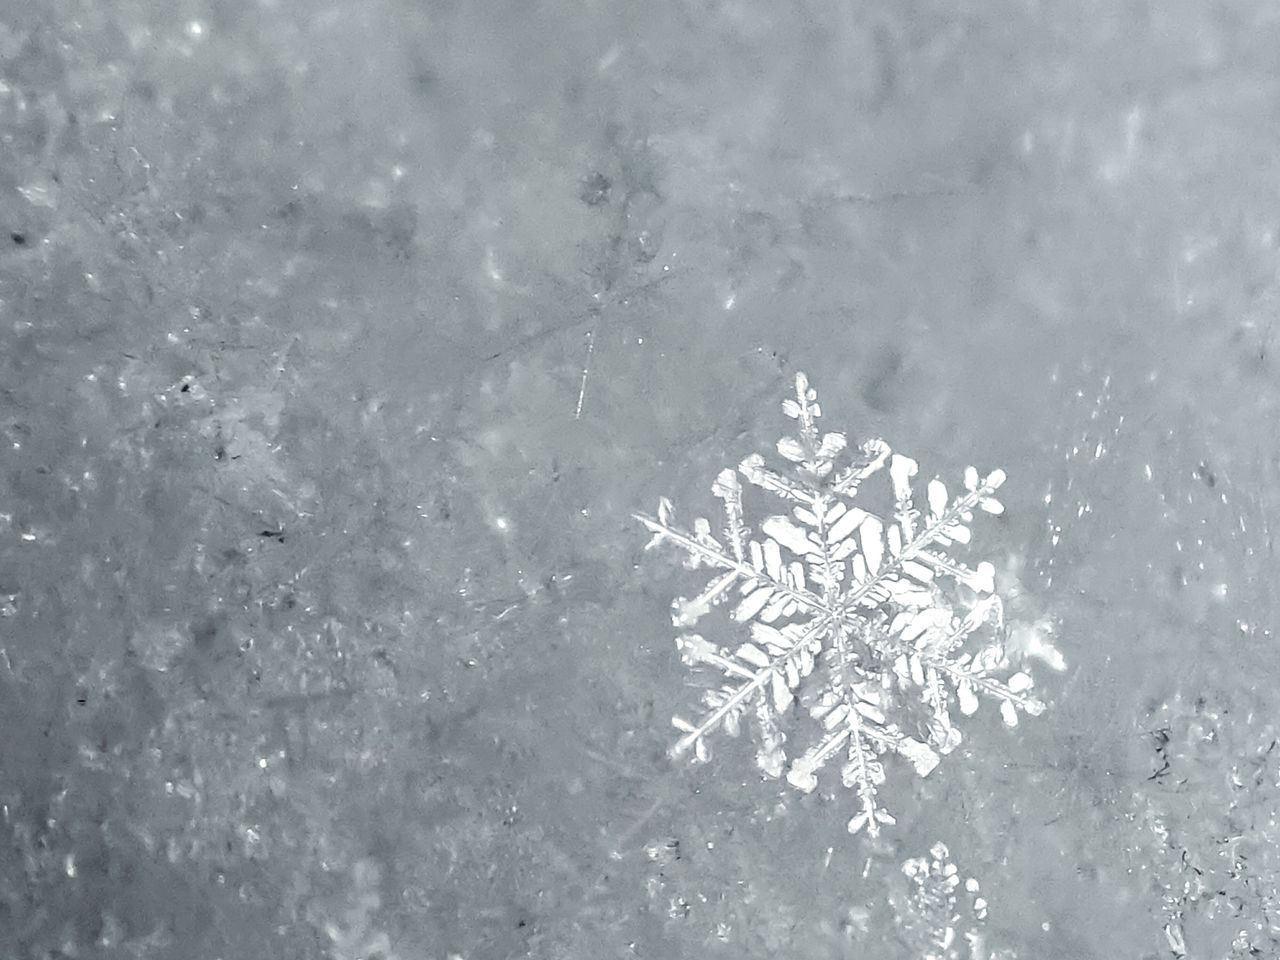 A white on white snowflake picture from the last snowstorm with photographable snowflakes during the 2016-2017 winter. Full Frame Water Nature Beauty In Nature Freshness Snow Snowflakes Macro White On White Winter Reflection Light White